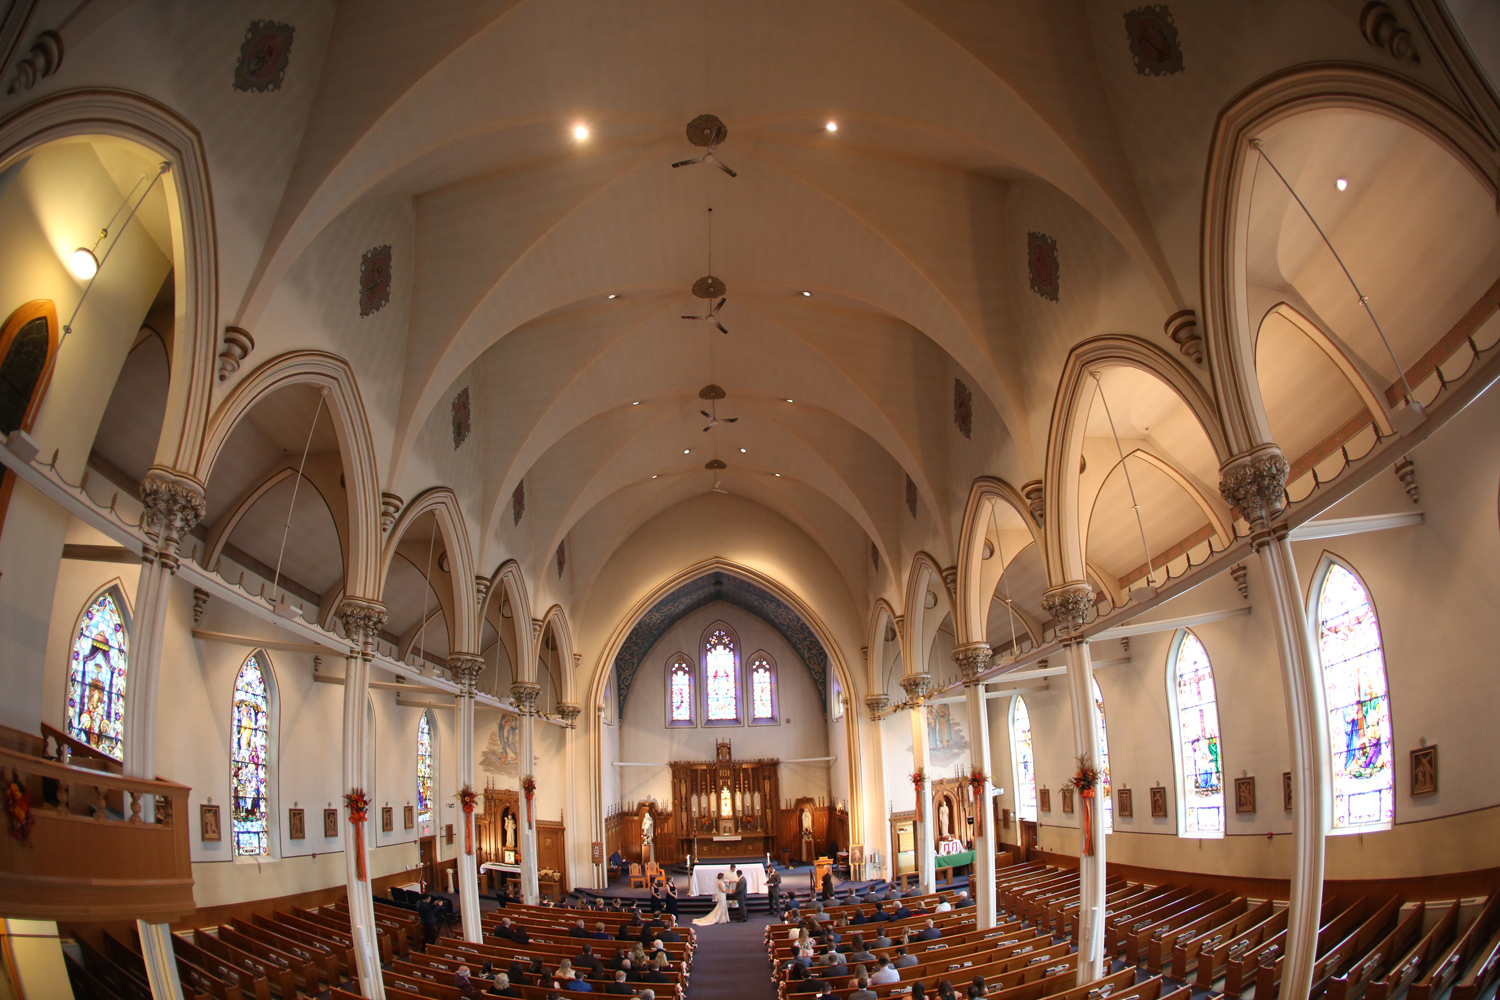 I used a Fish Eye lens to capture the majesty of this beautiful church.